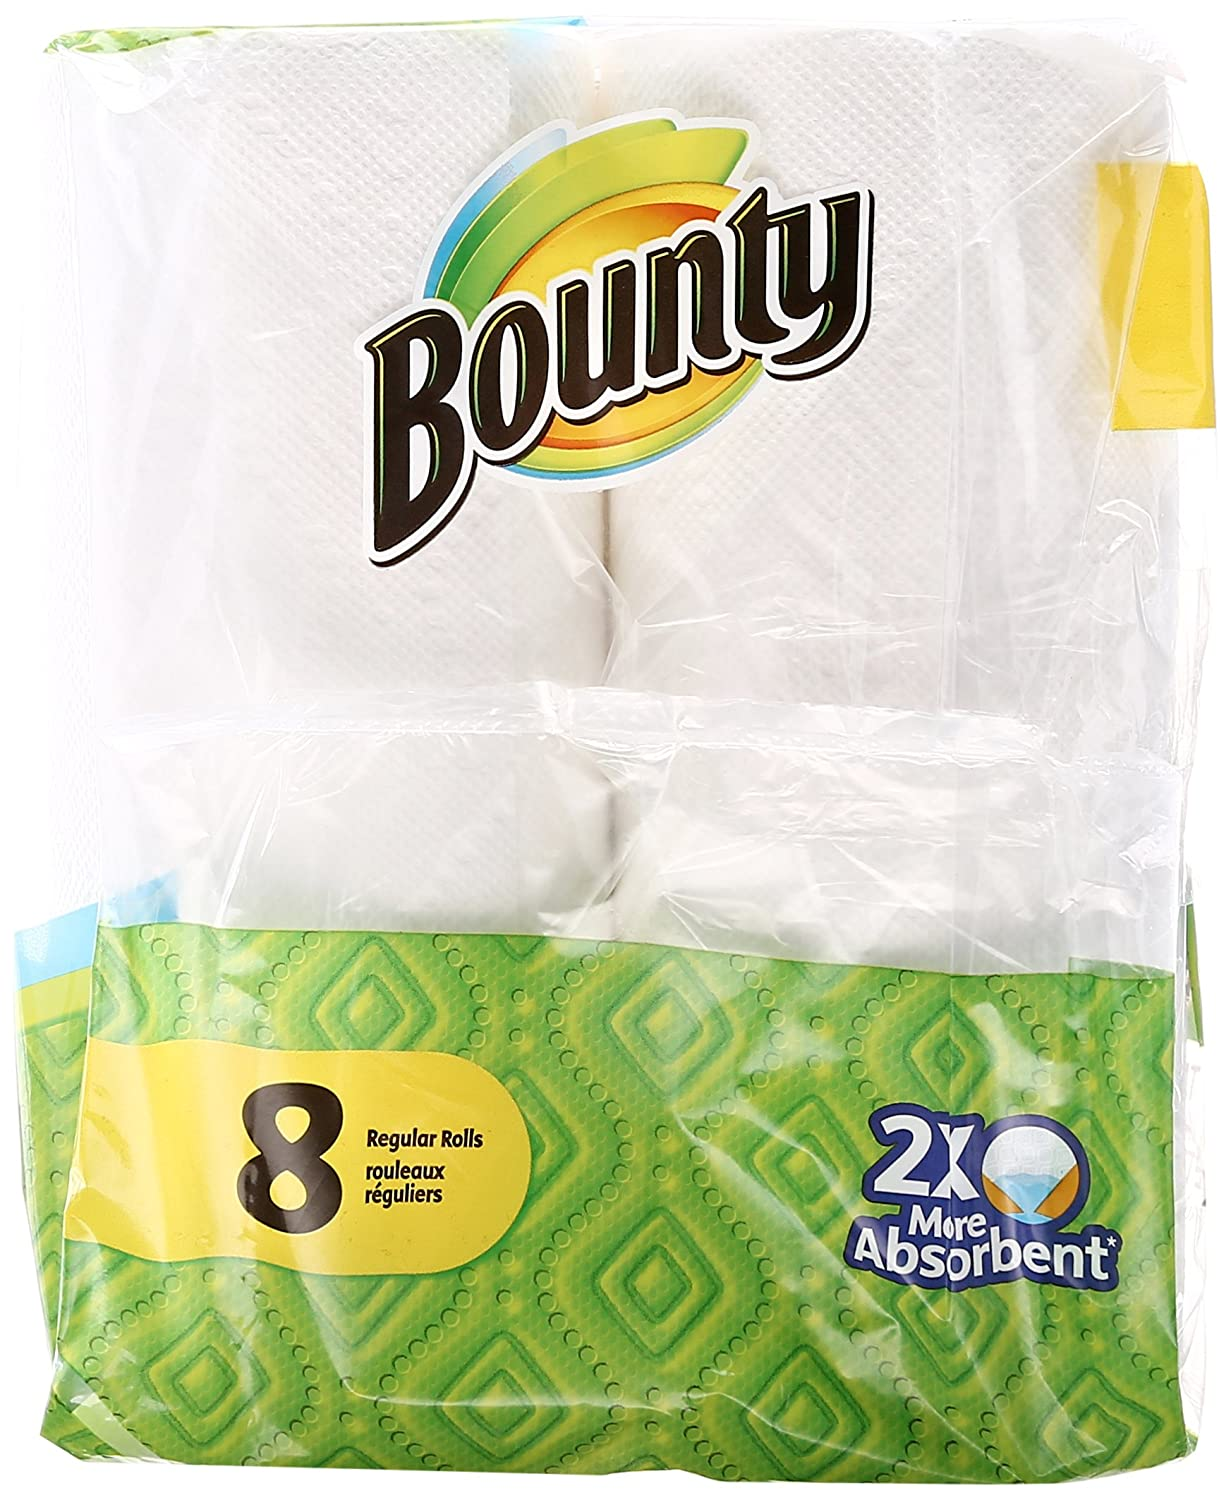 Amazon.com: Bounty 95029 White Bounty Paper Towels 8 Count: Home & Kitchen